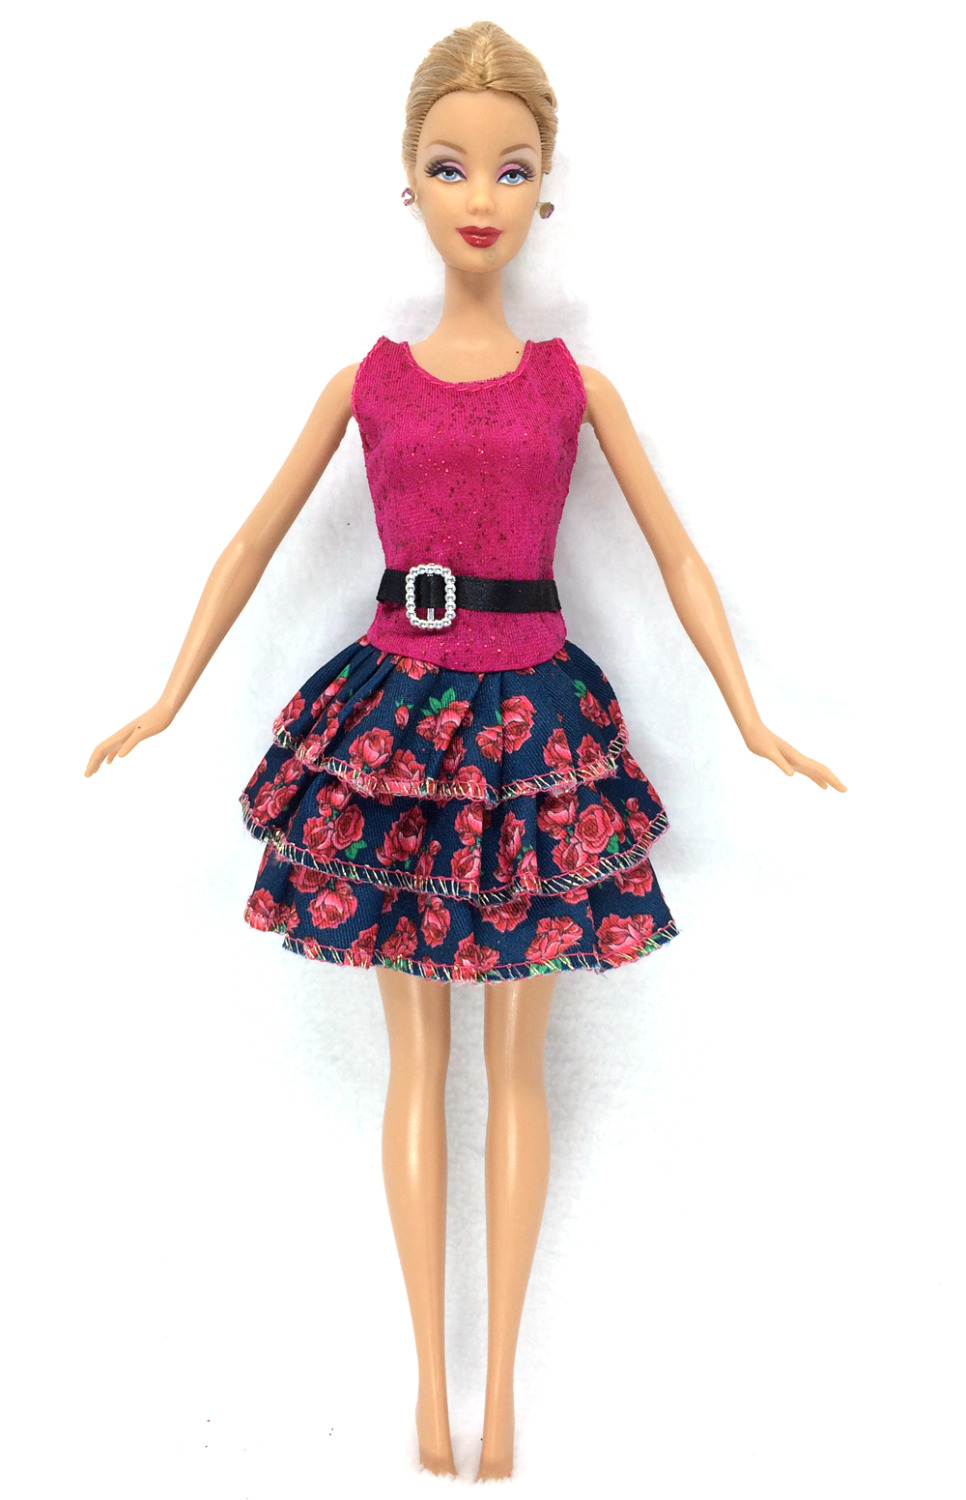 Best Barbie Dolls And Toys : Fashion dress for barbie doll handmade avenue